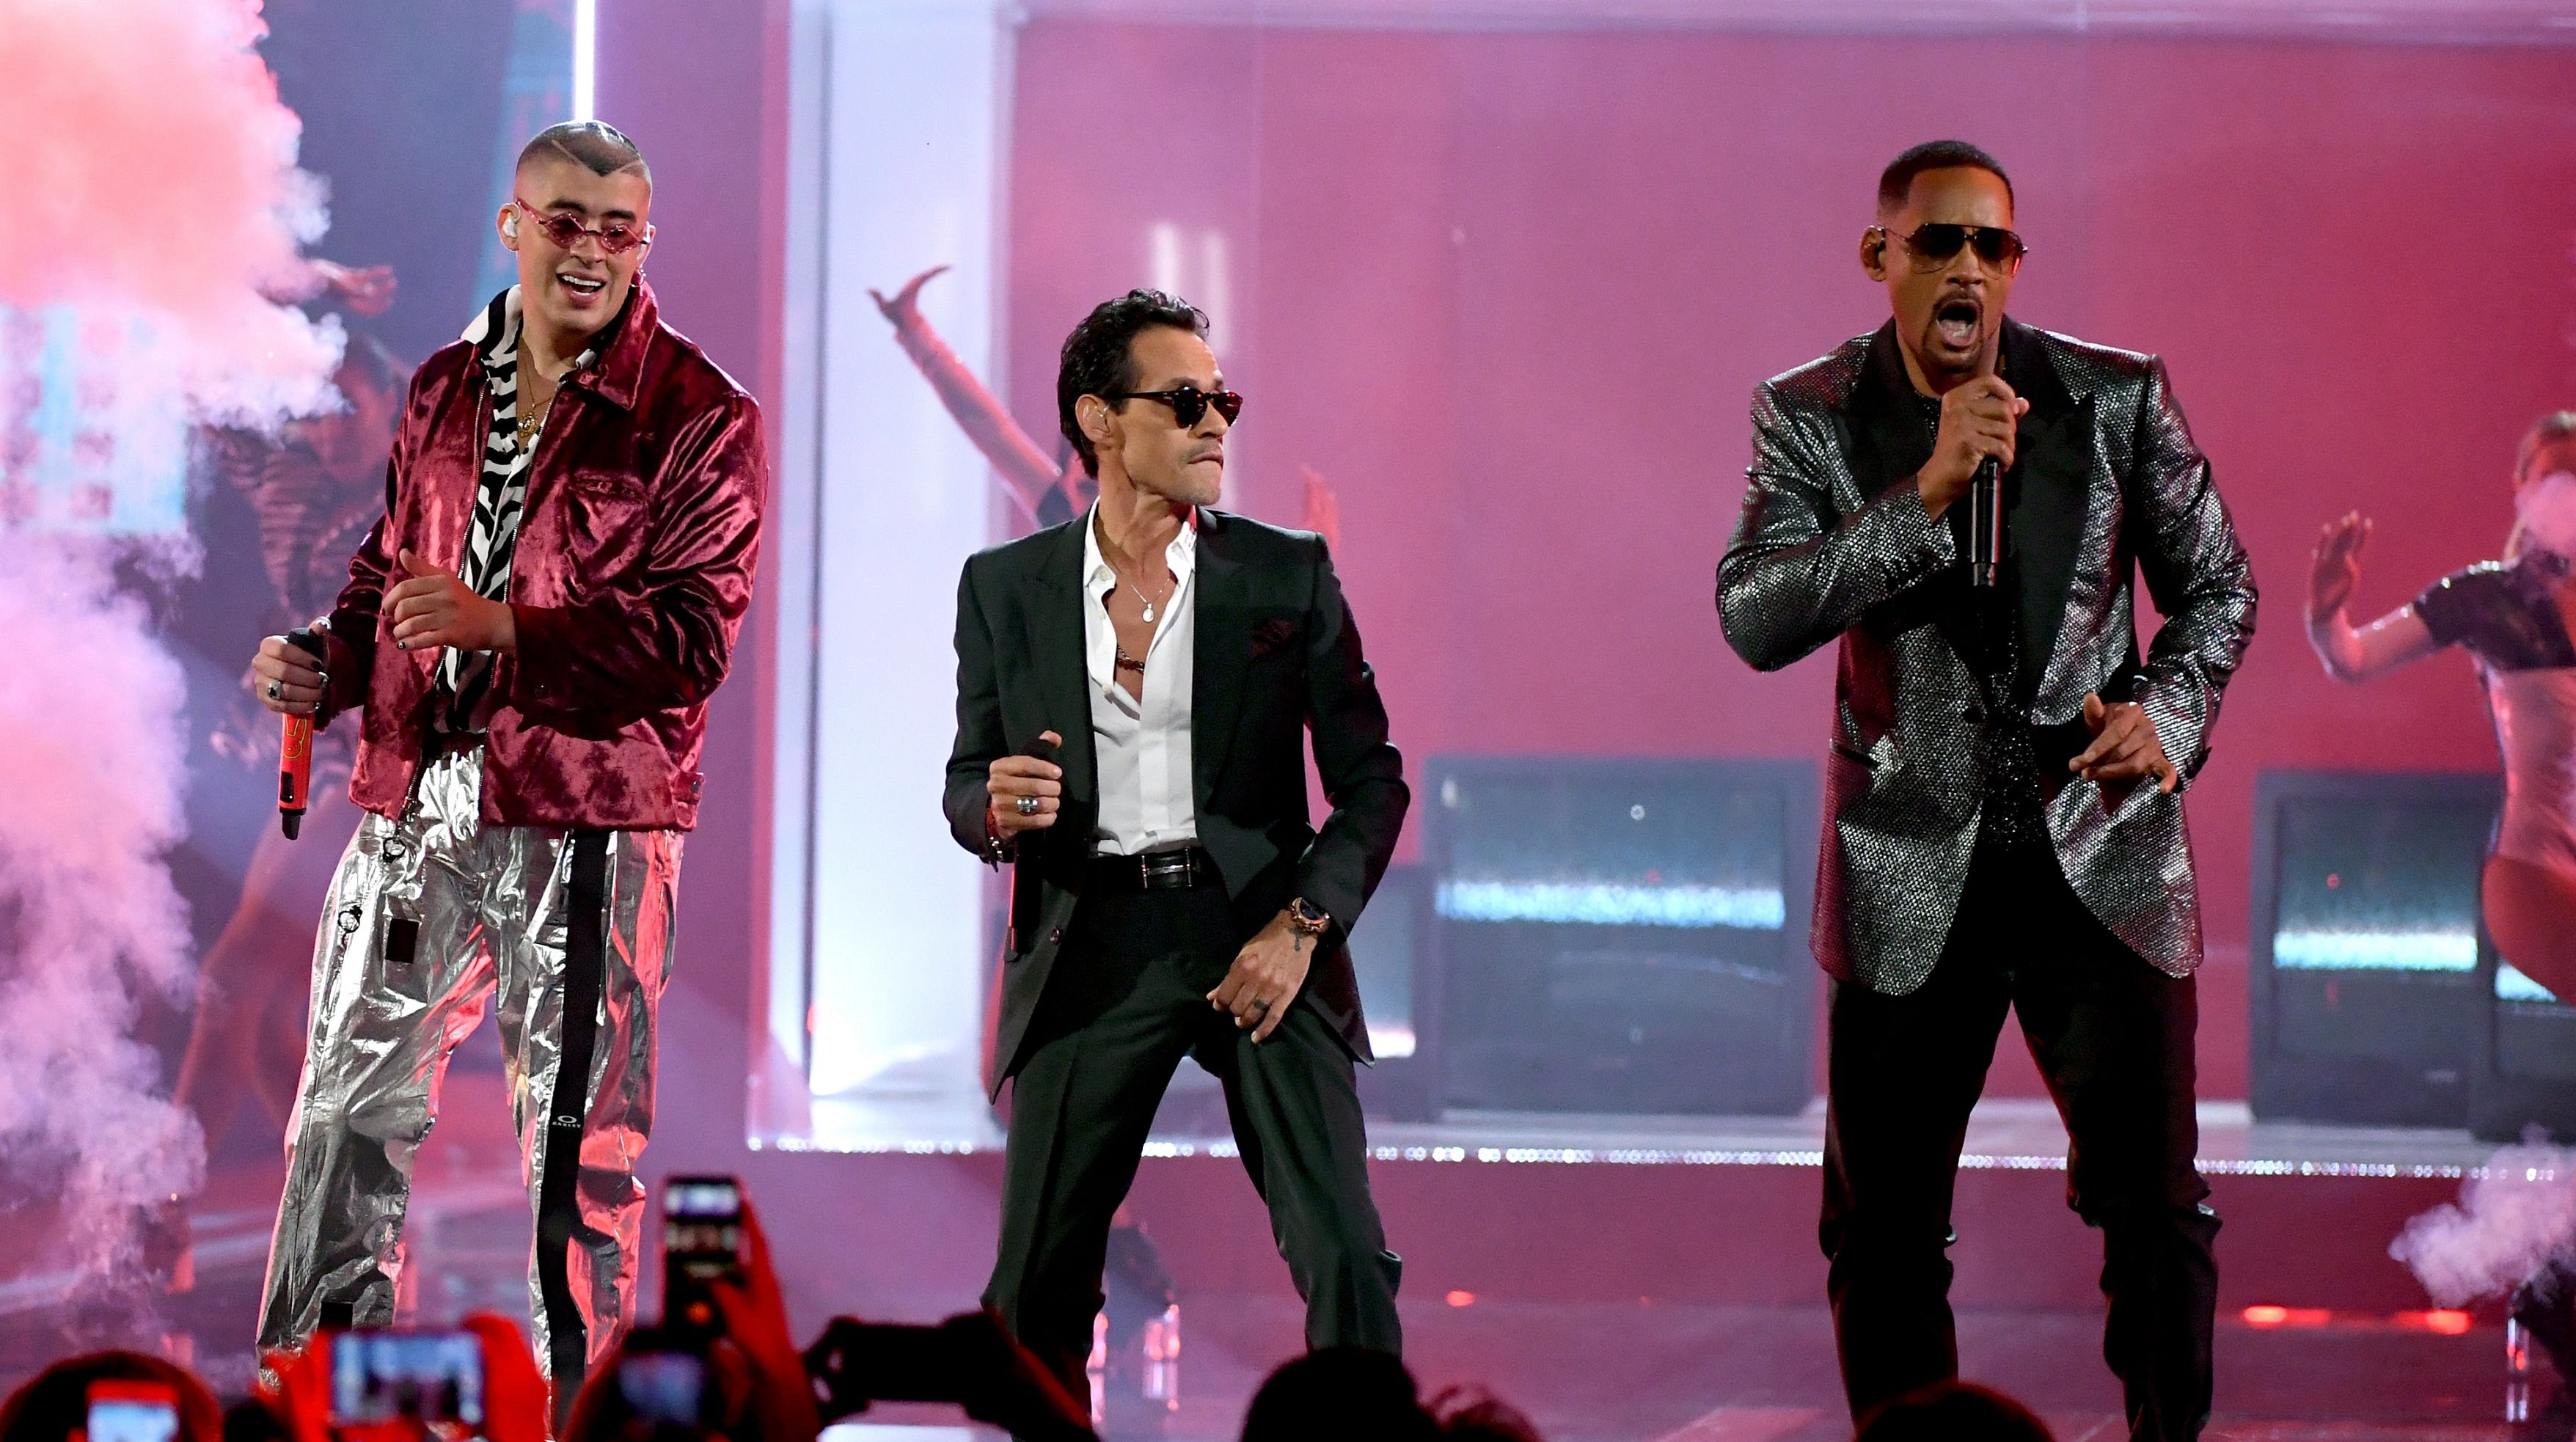 (L-R) Bad Bunny, Marc Anthony and Will Smith perform onstage during the 19th annual Latin GRAMMY Awards at MGM Grand Garden Arena on November 15, 2018 in Las Vegas, Nevada.